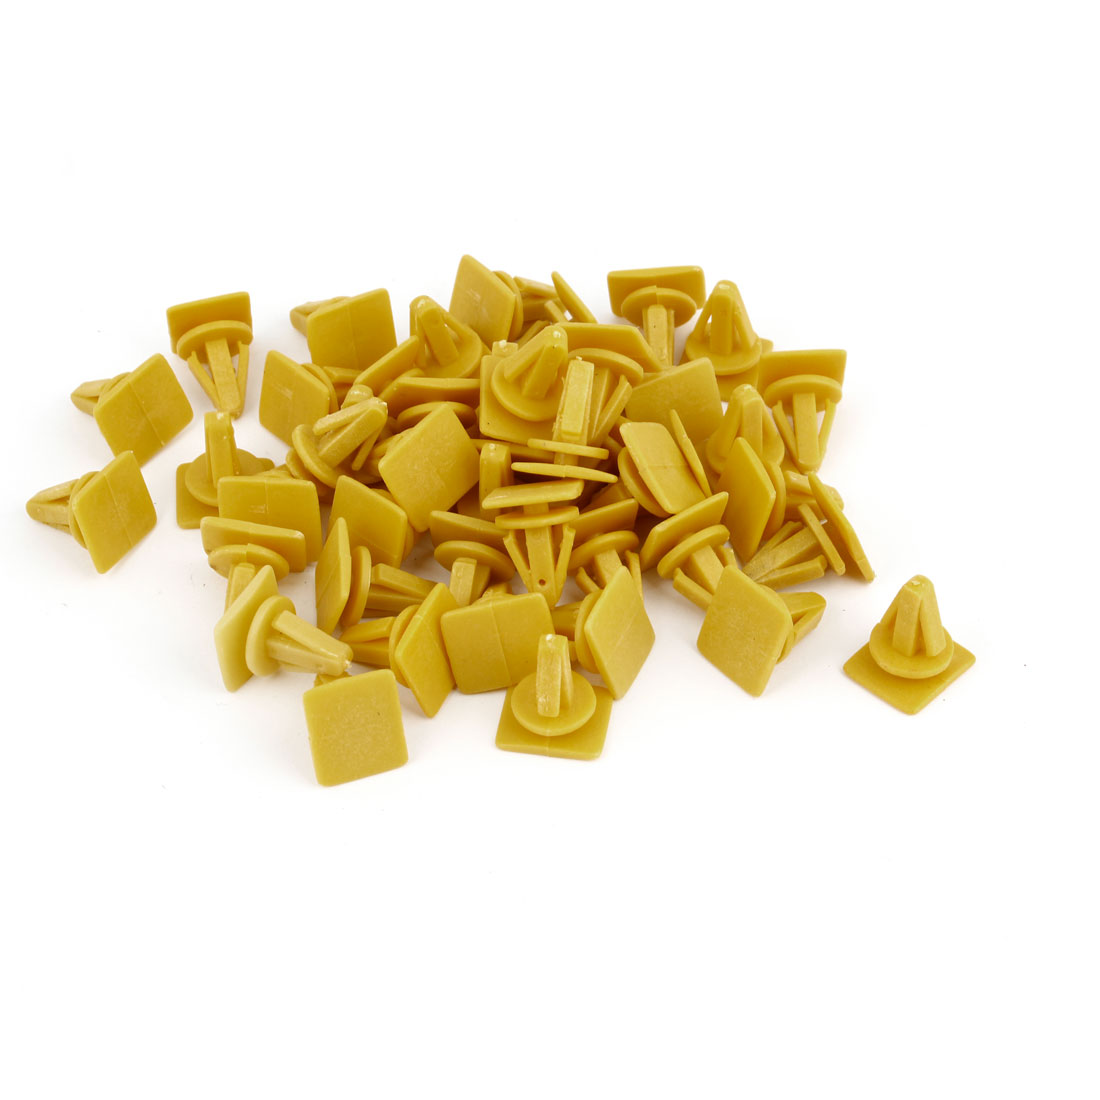 Yellow 8mm Hole Vehicle Car Door Plastic Rivet Fastener Trim Panel Retainer Clip 45pcs